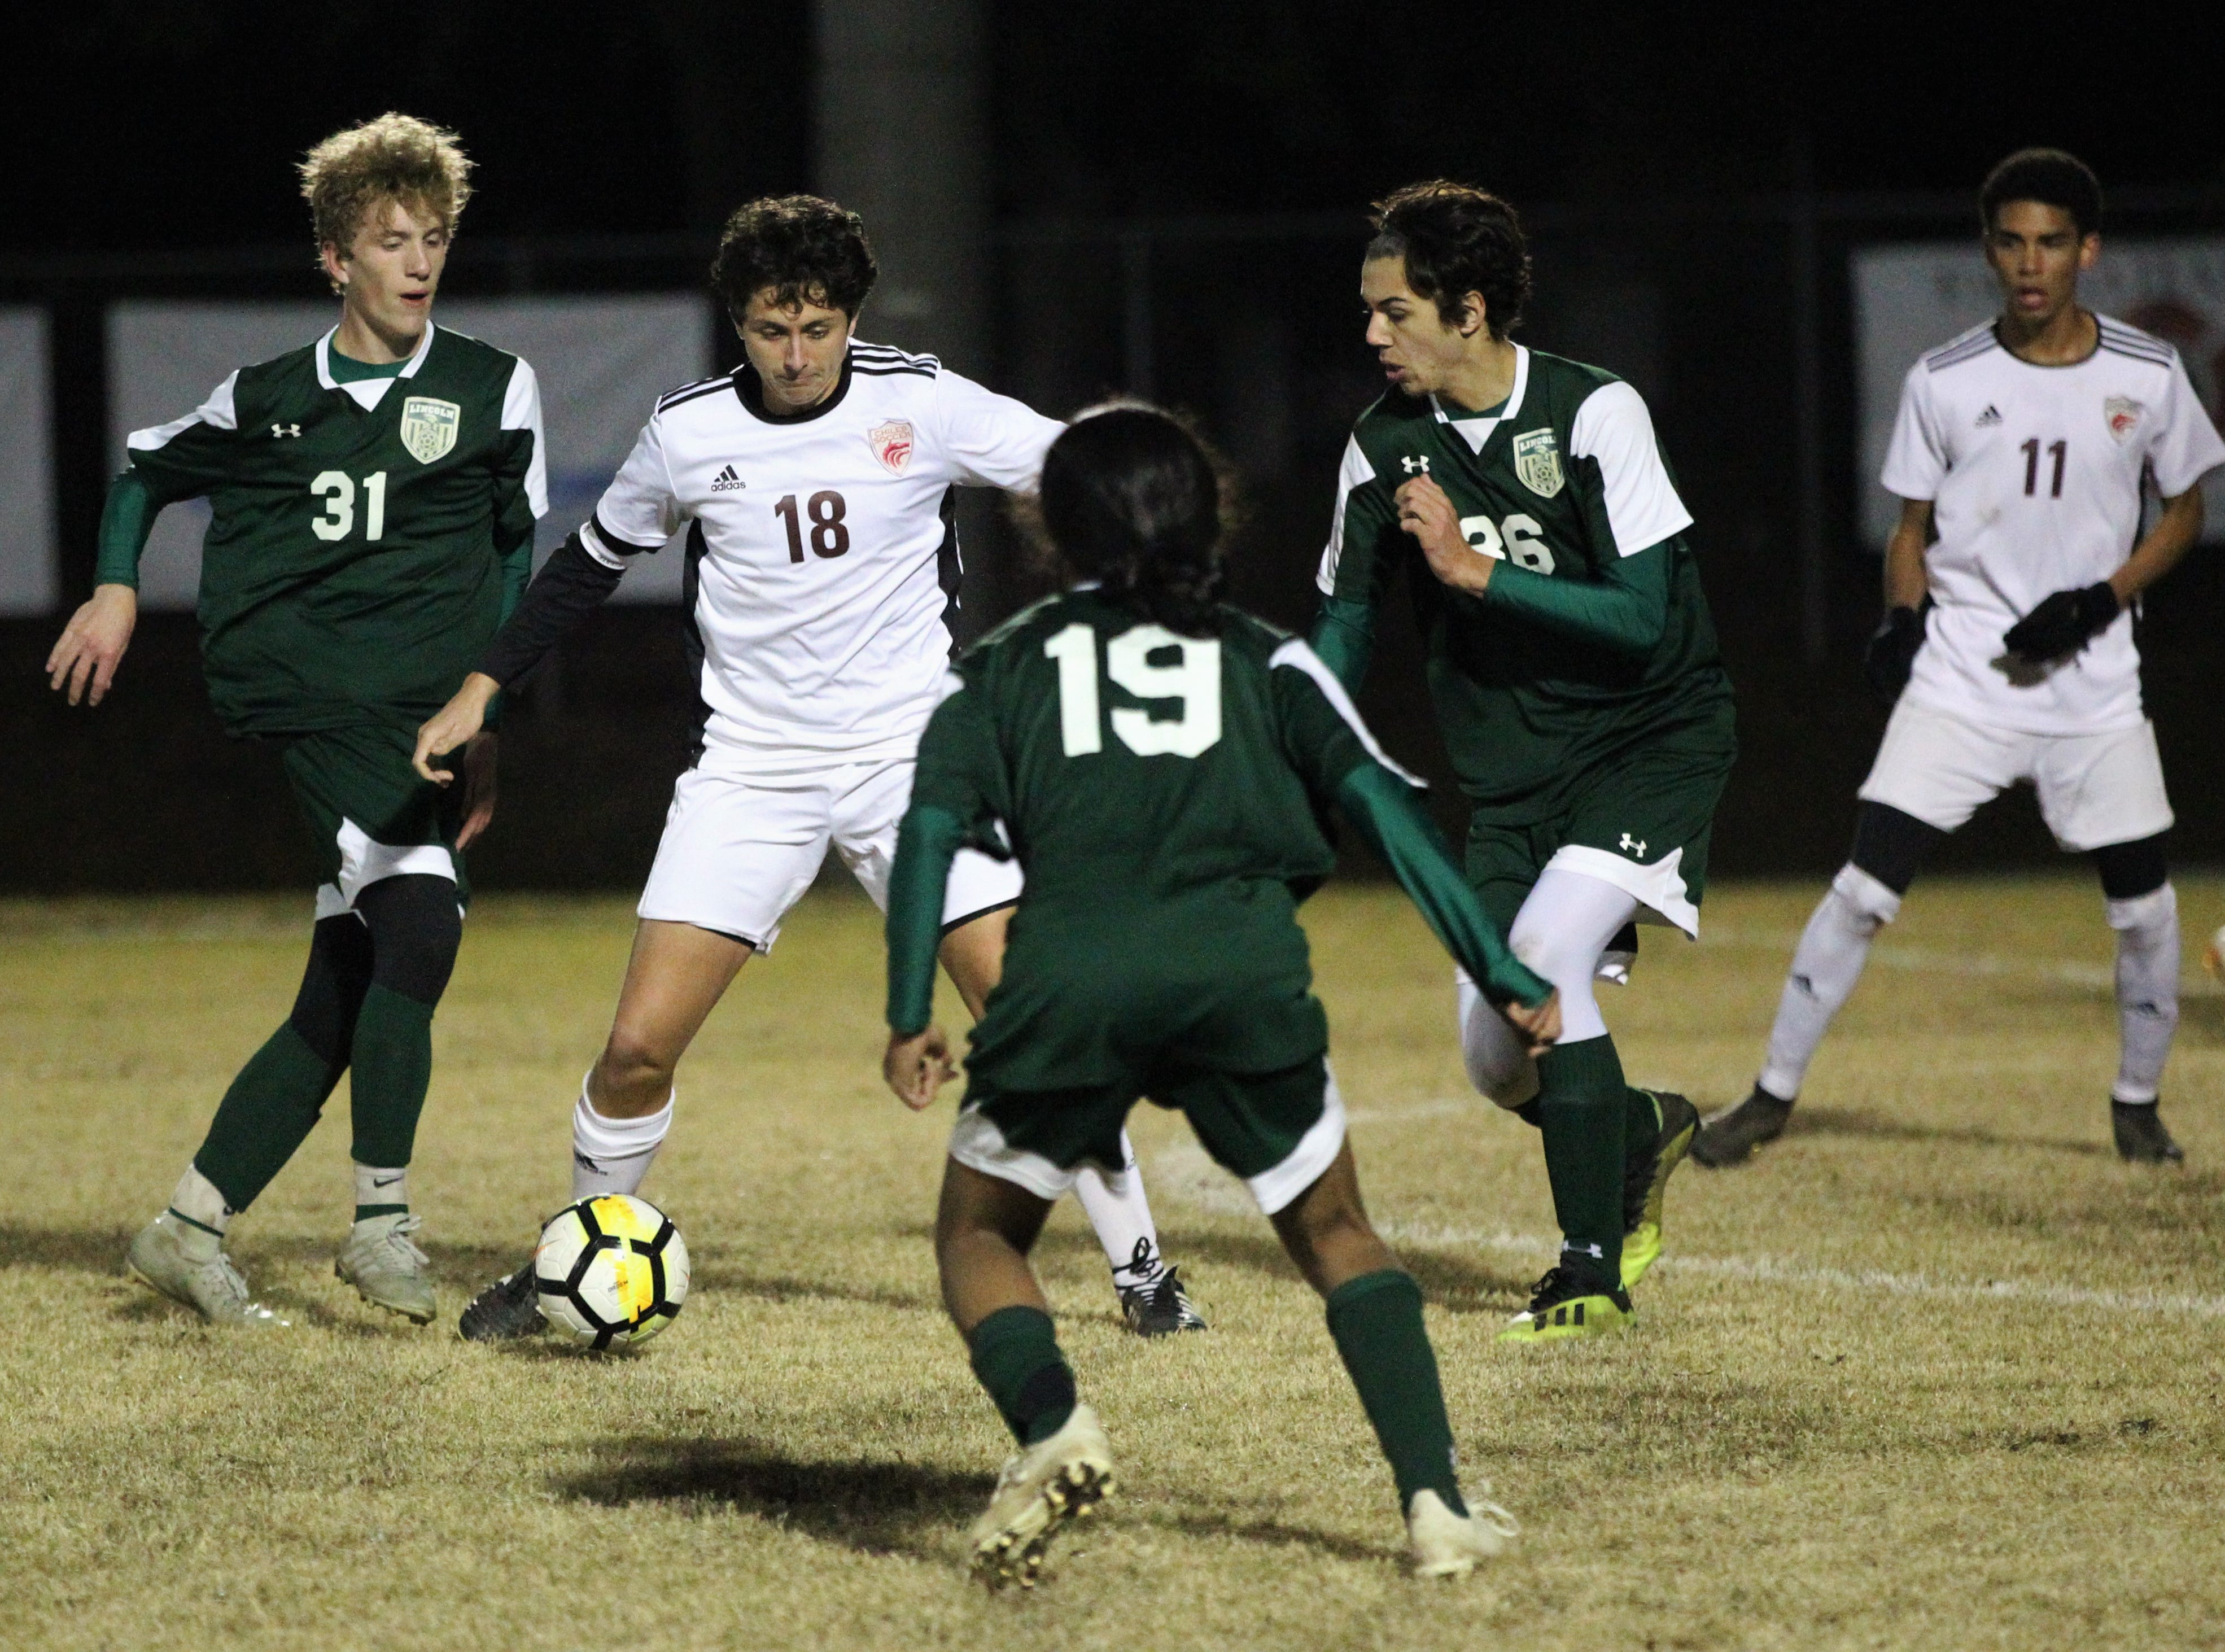 Chiles midfielder Patrick O'Sullivan tries to get through three Lincoln players as Chiles' boys soccer team beat Lincoln 1-0 in a District 2-4A semifinal on Jan. 30, 2019.